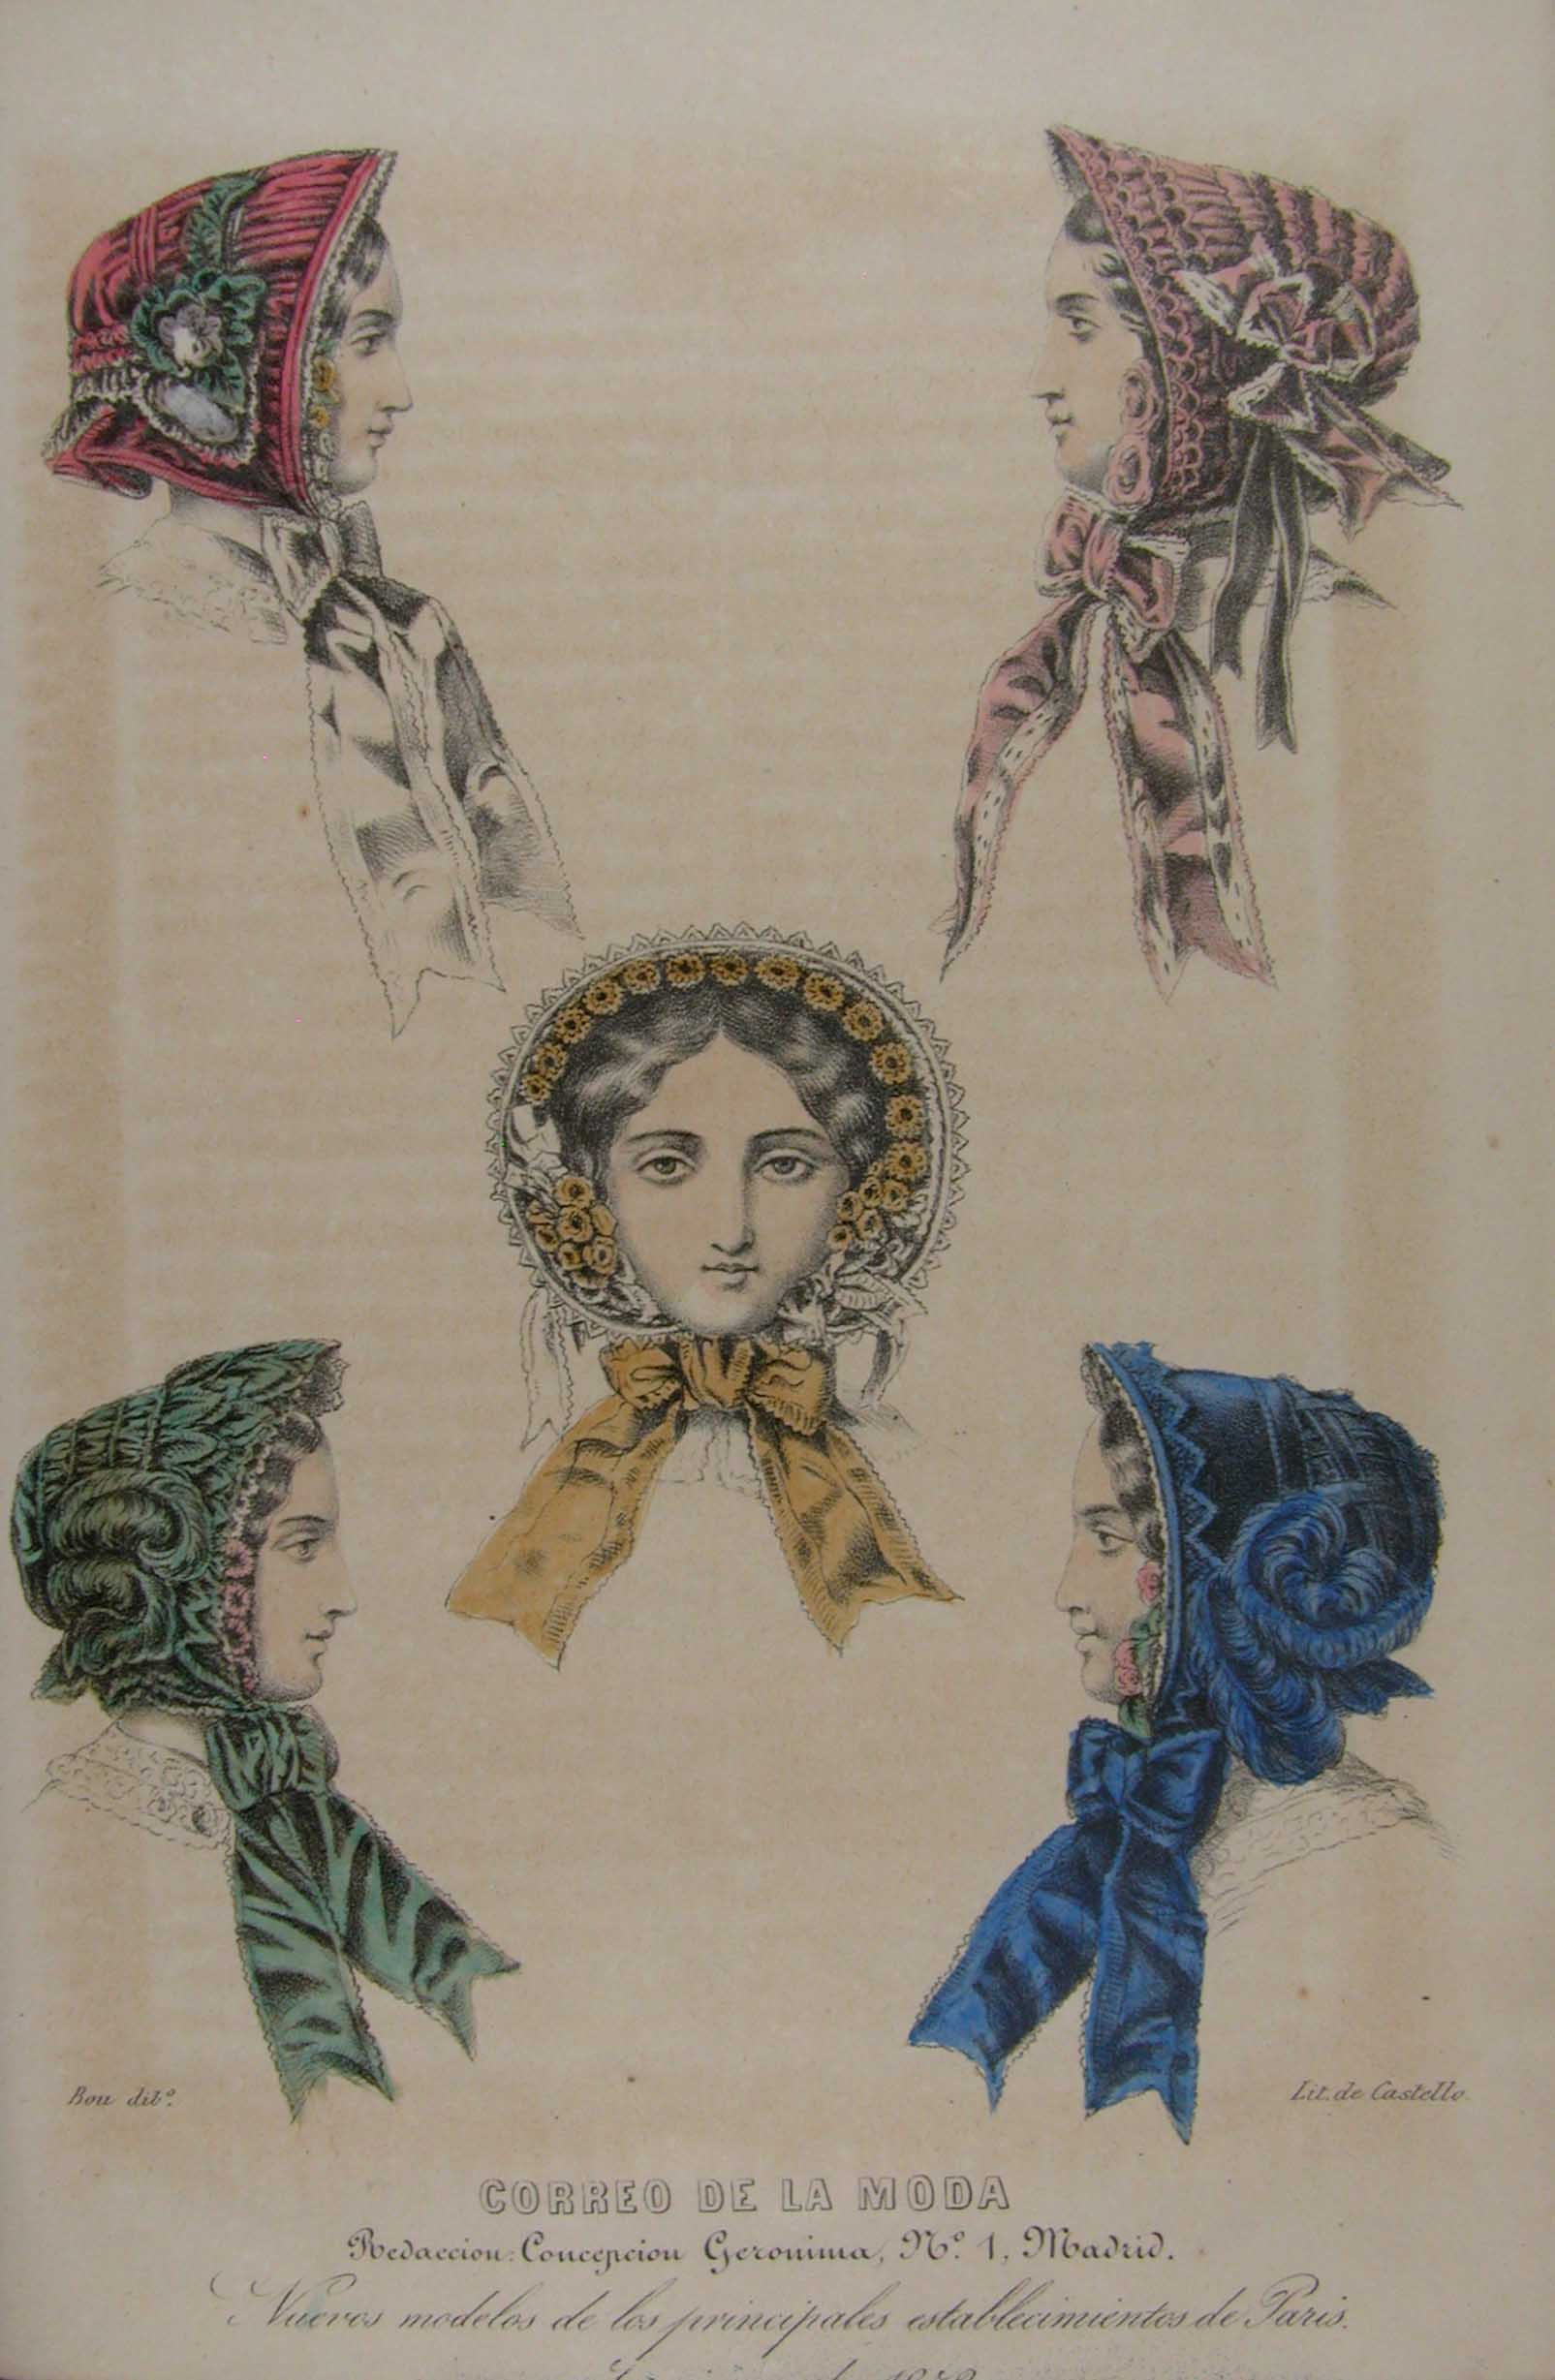 Parisean fashion print showing women hats